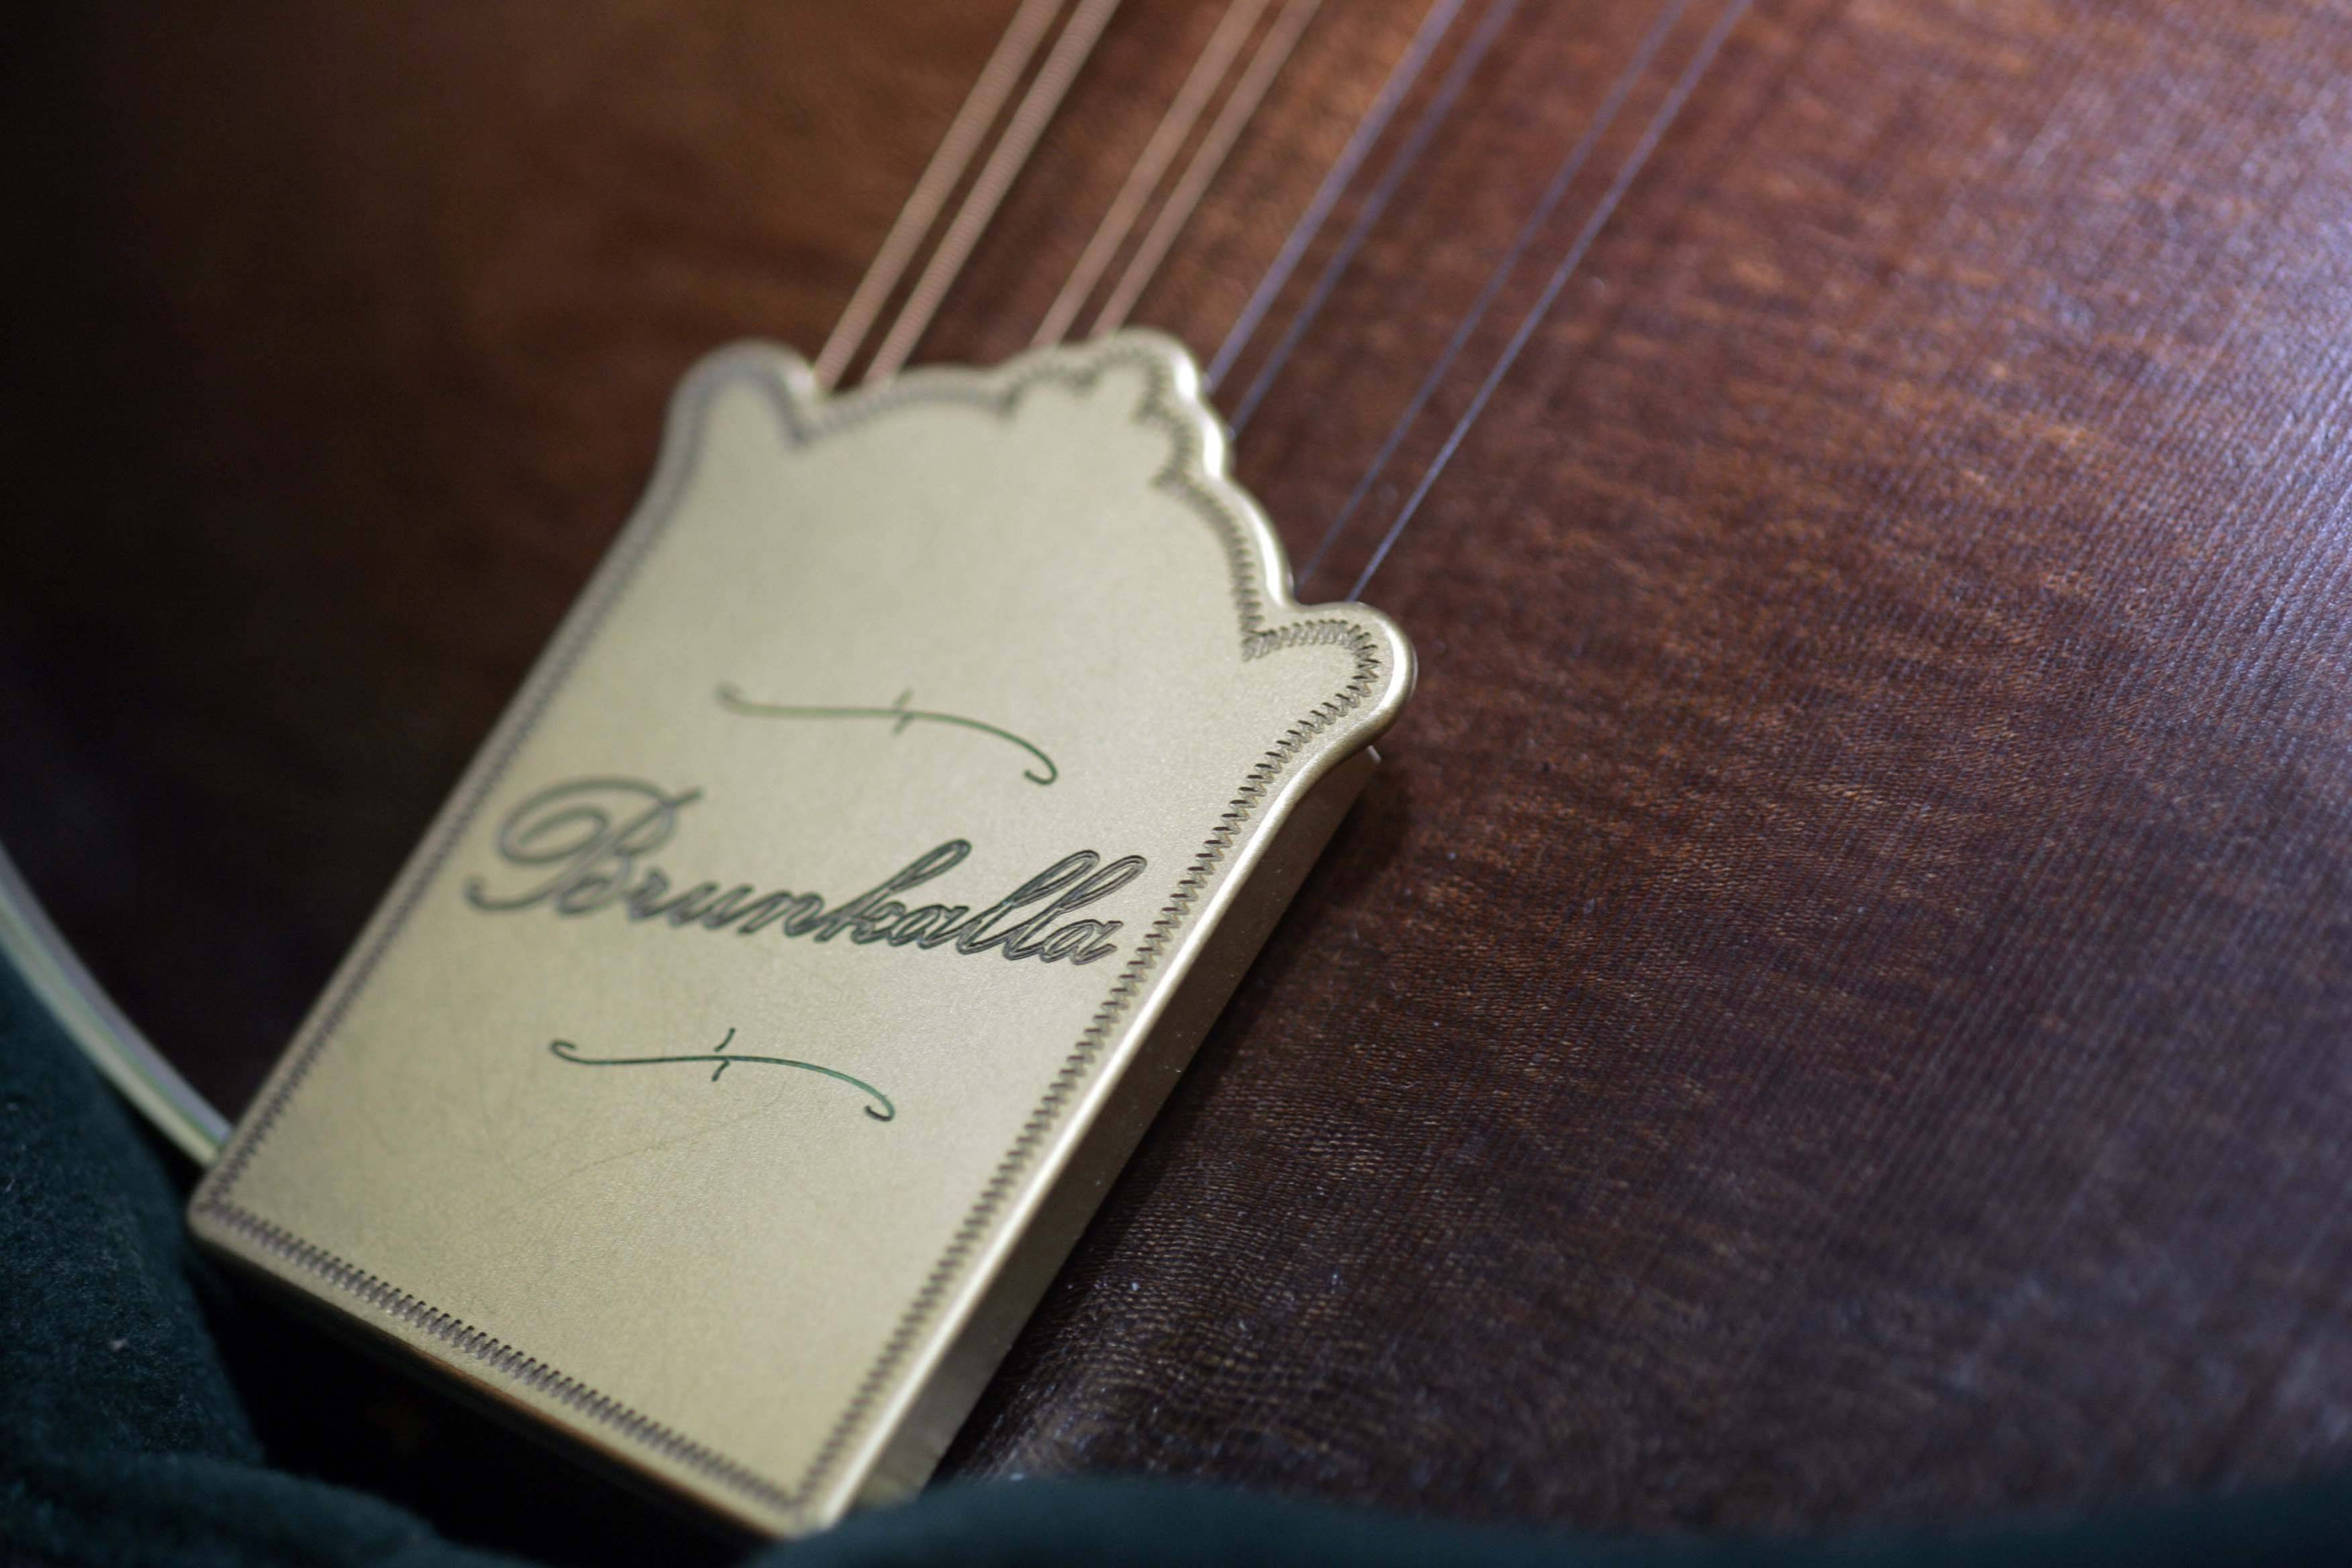 The Brunkalla tag on one of his custom instruments.